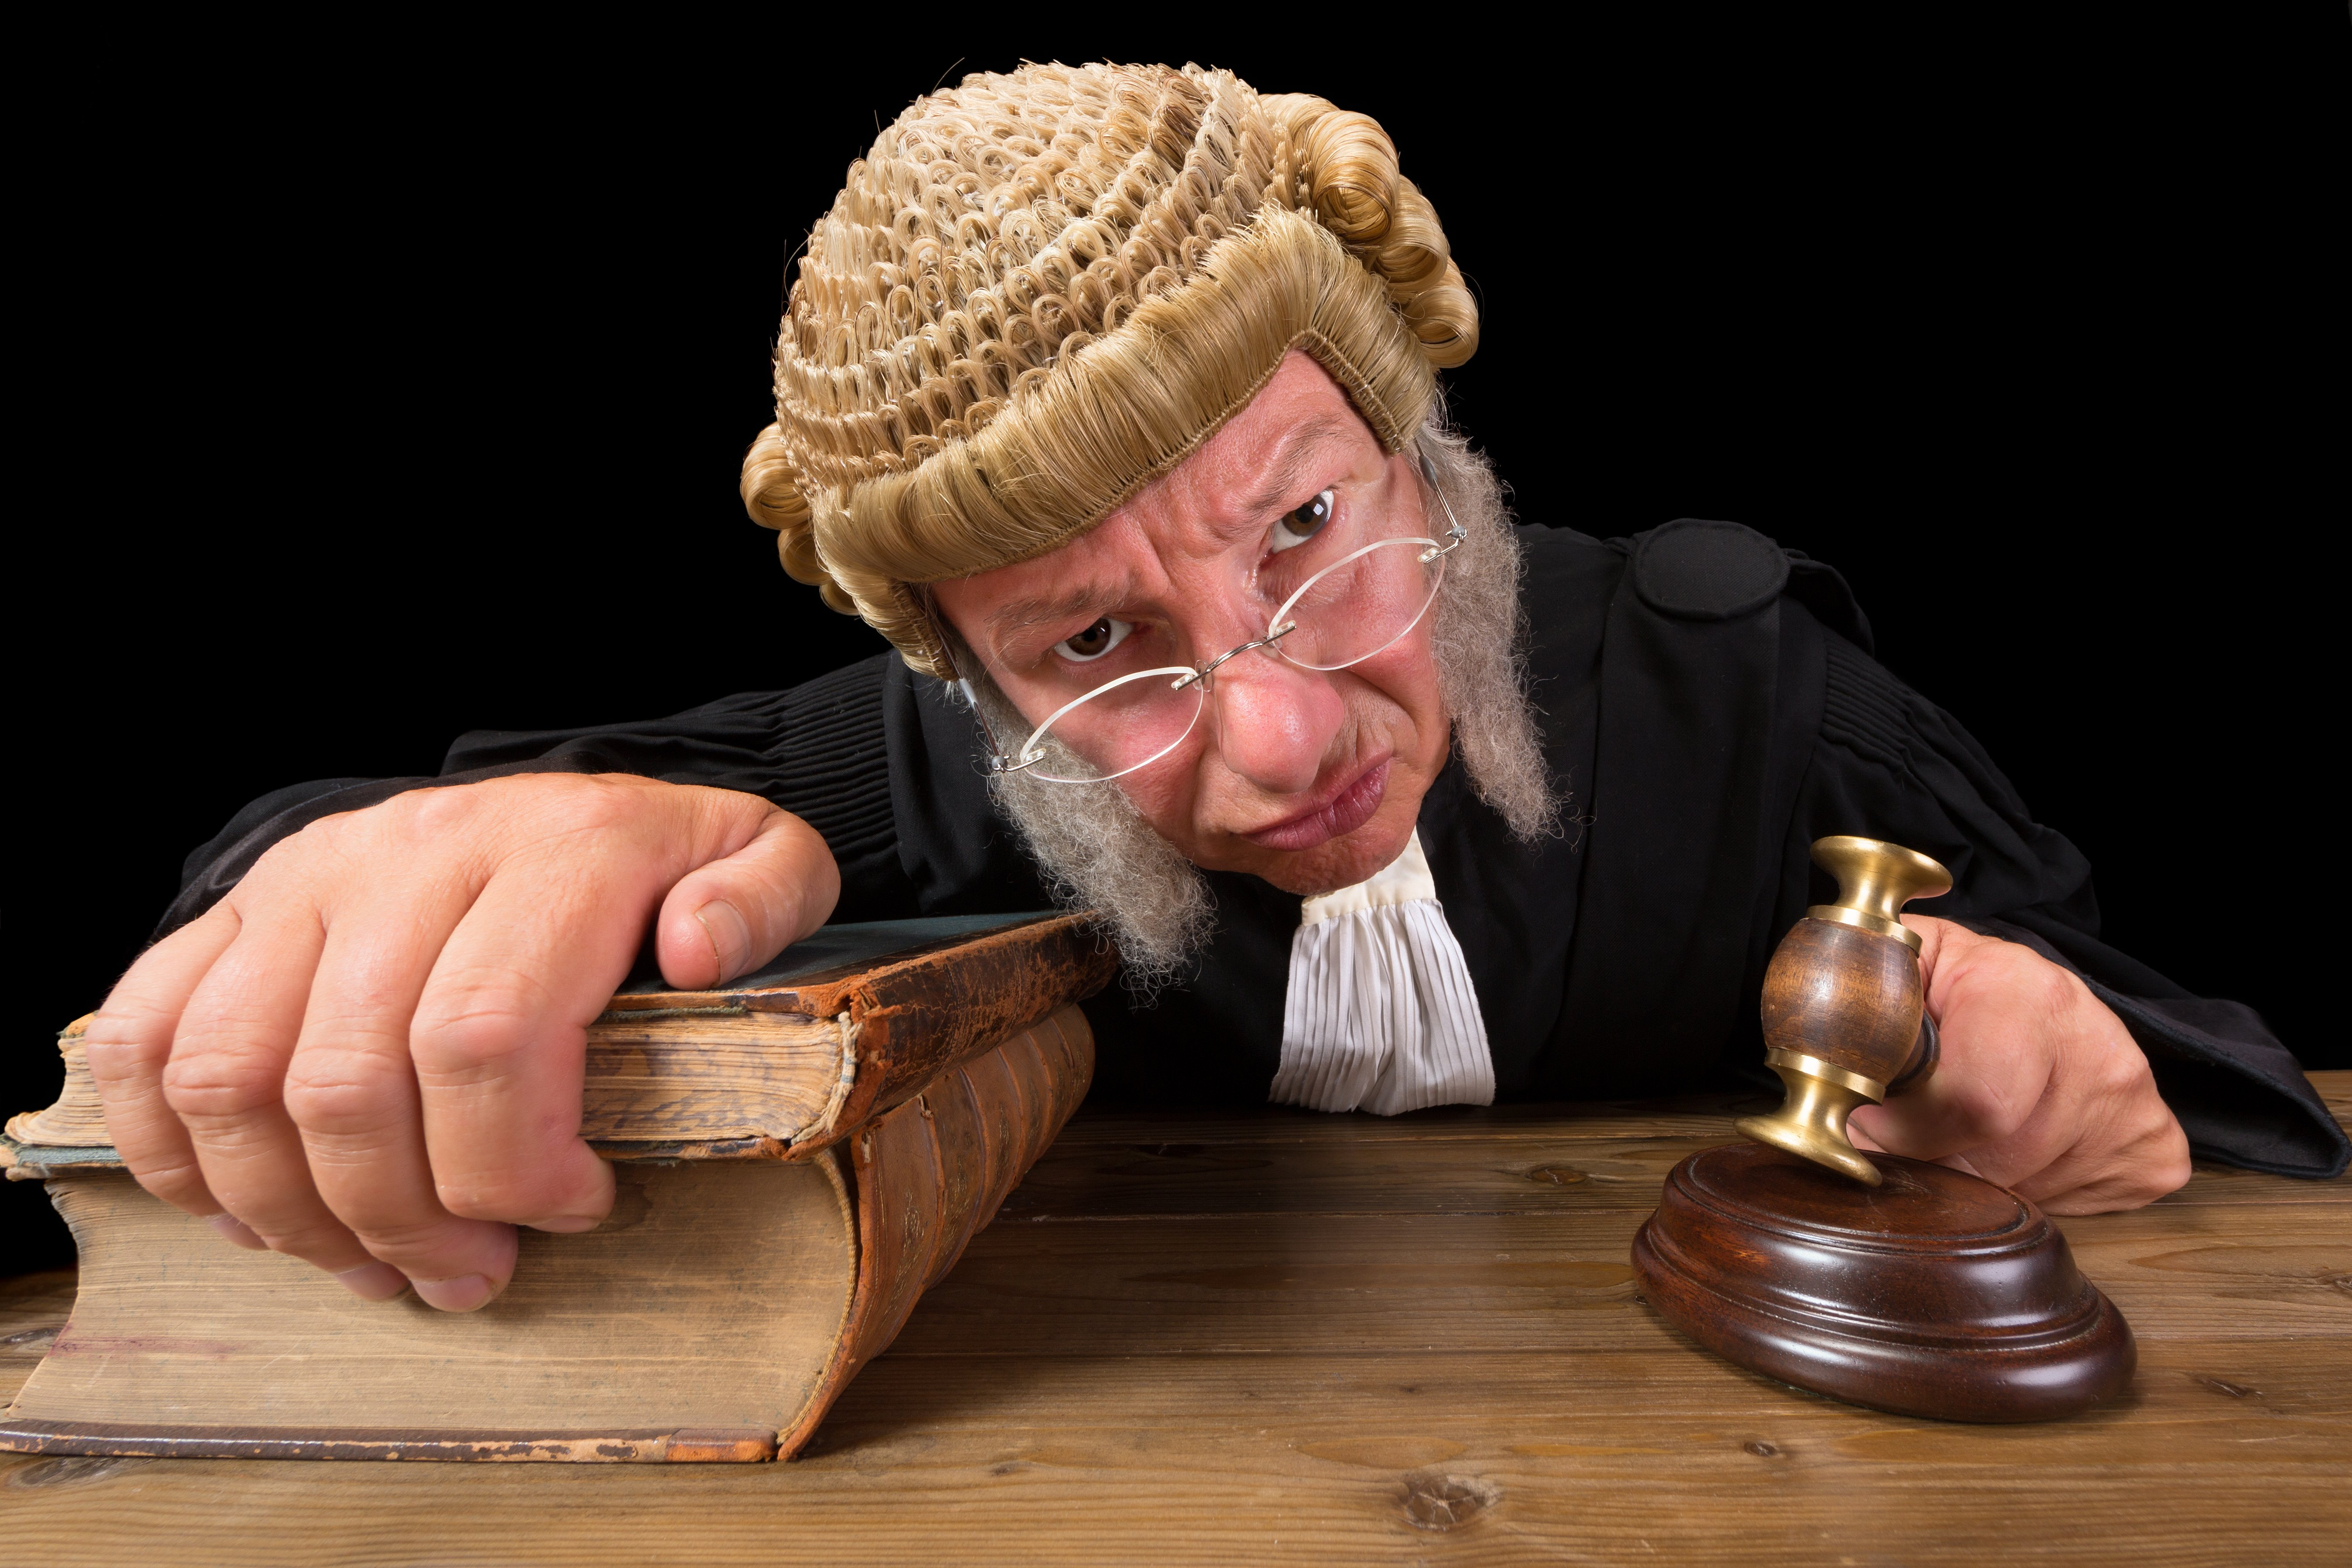 Angry judge with a hammer and a wig, holding legal tomes. Image credit: Shutterstock